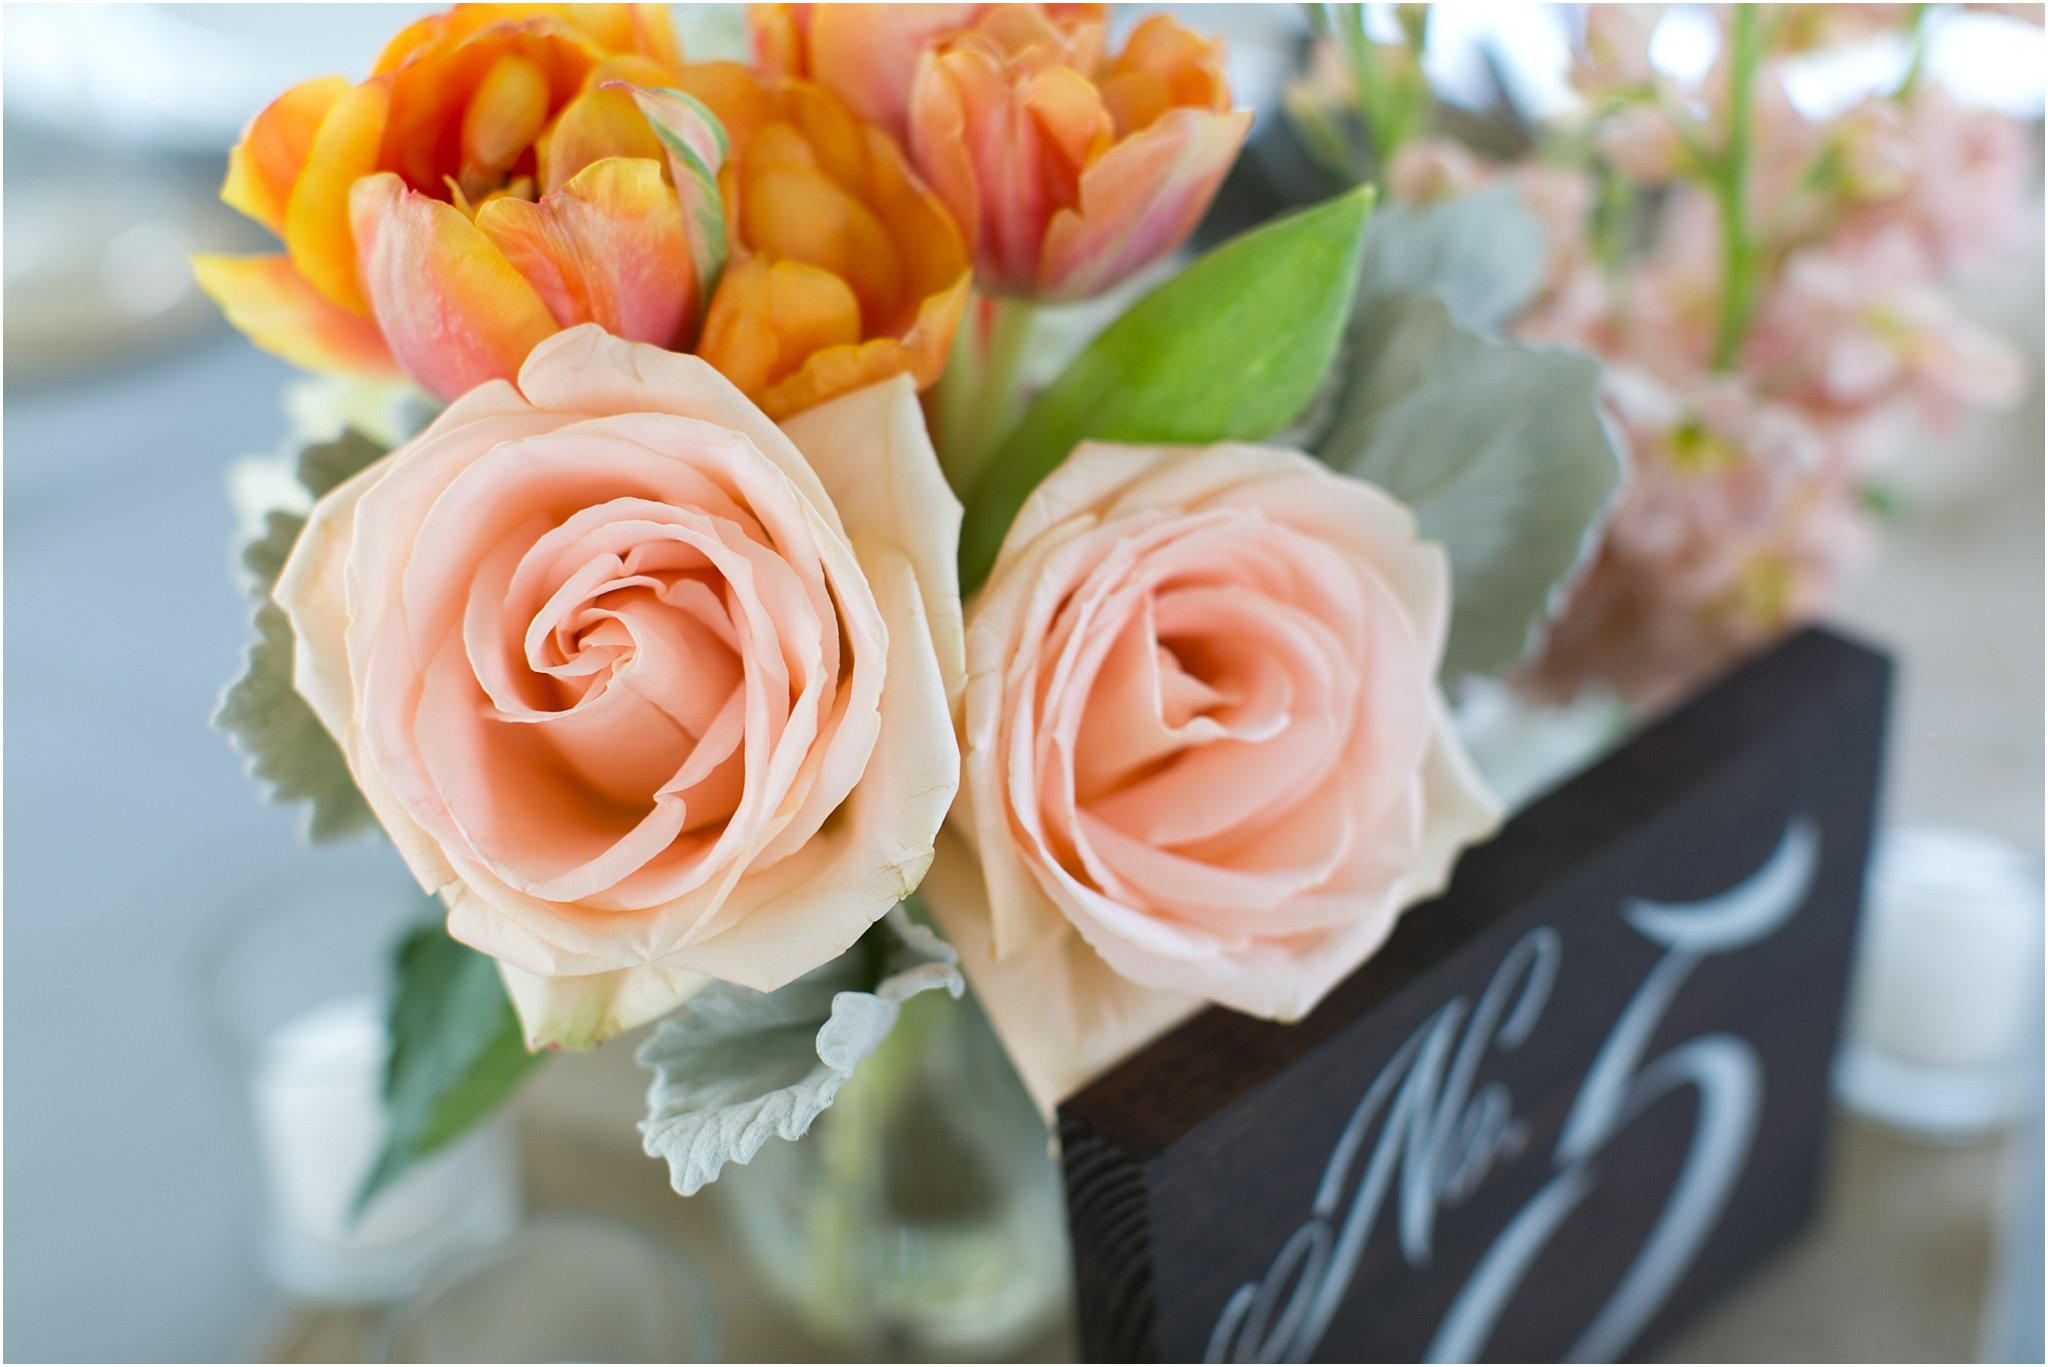 jessica_ryan_photography_holly_ridge_manor_wedding_roost_flowers_jamie_leigh_events_dhalia_edwards_candid_vibrant_wedding_colors_1352